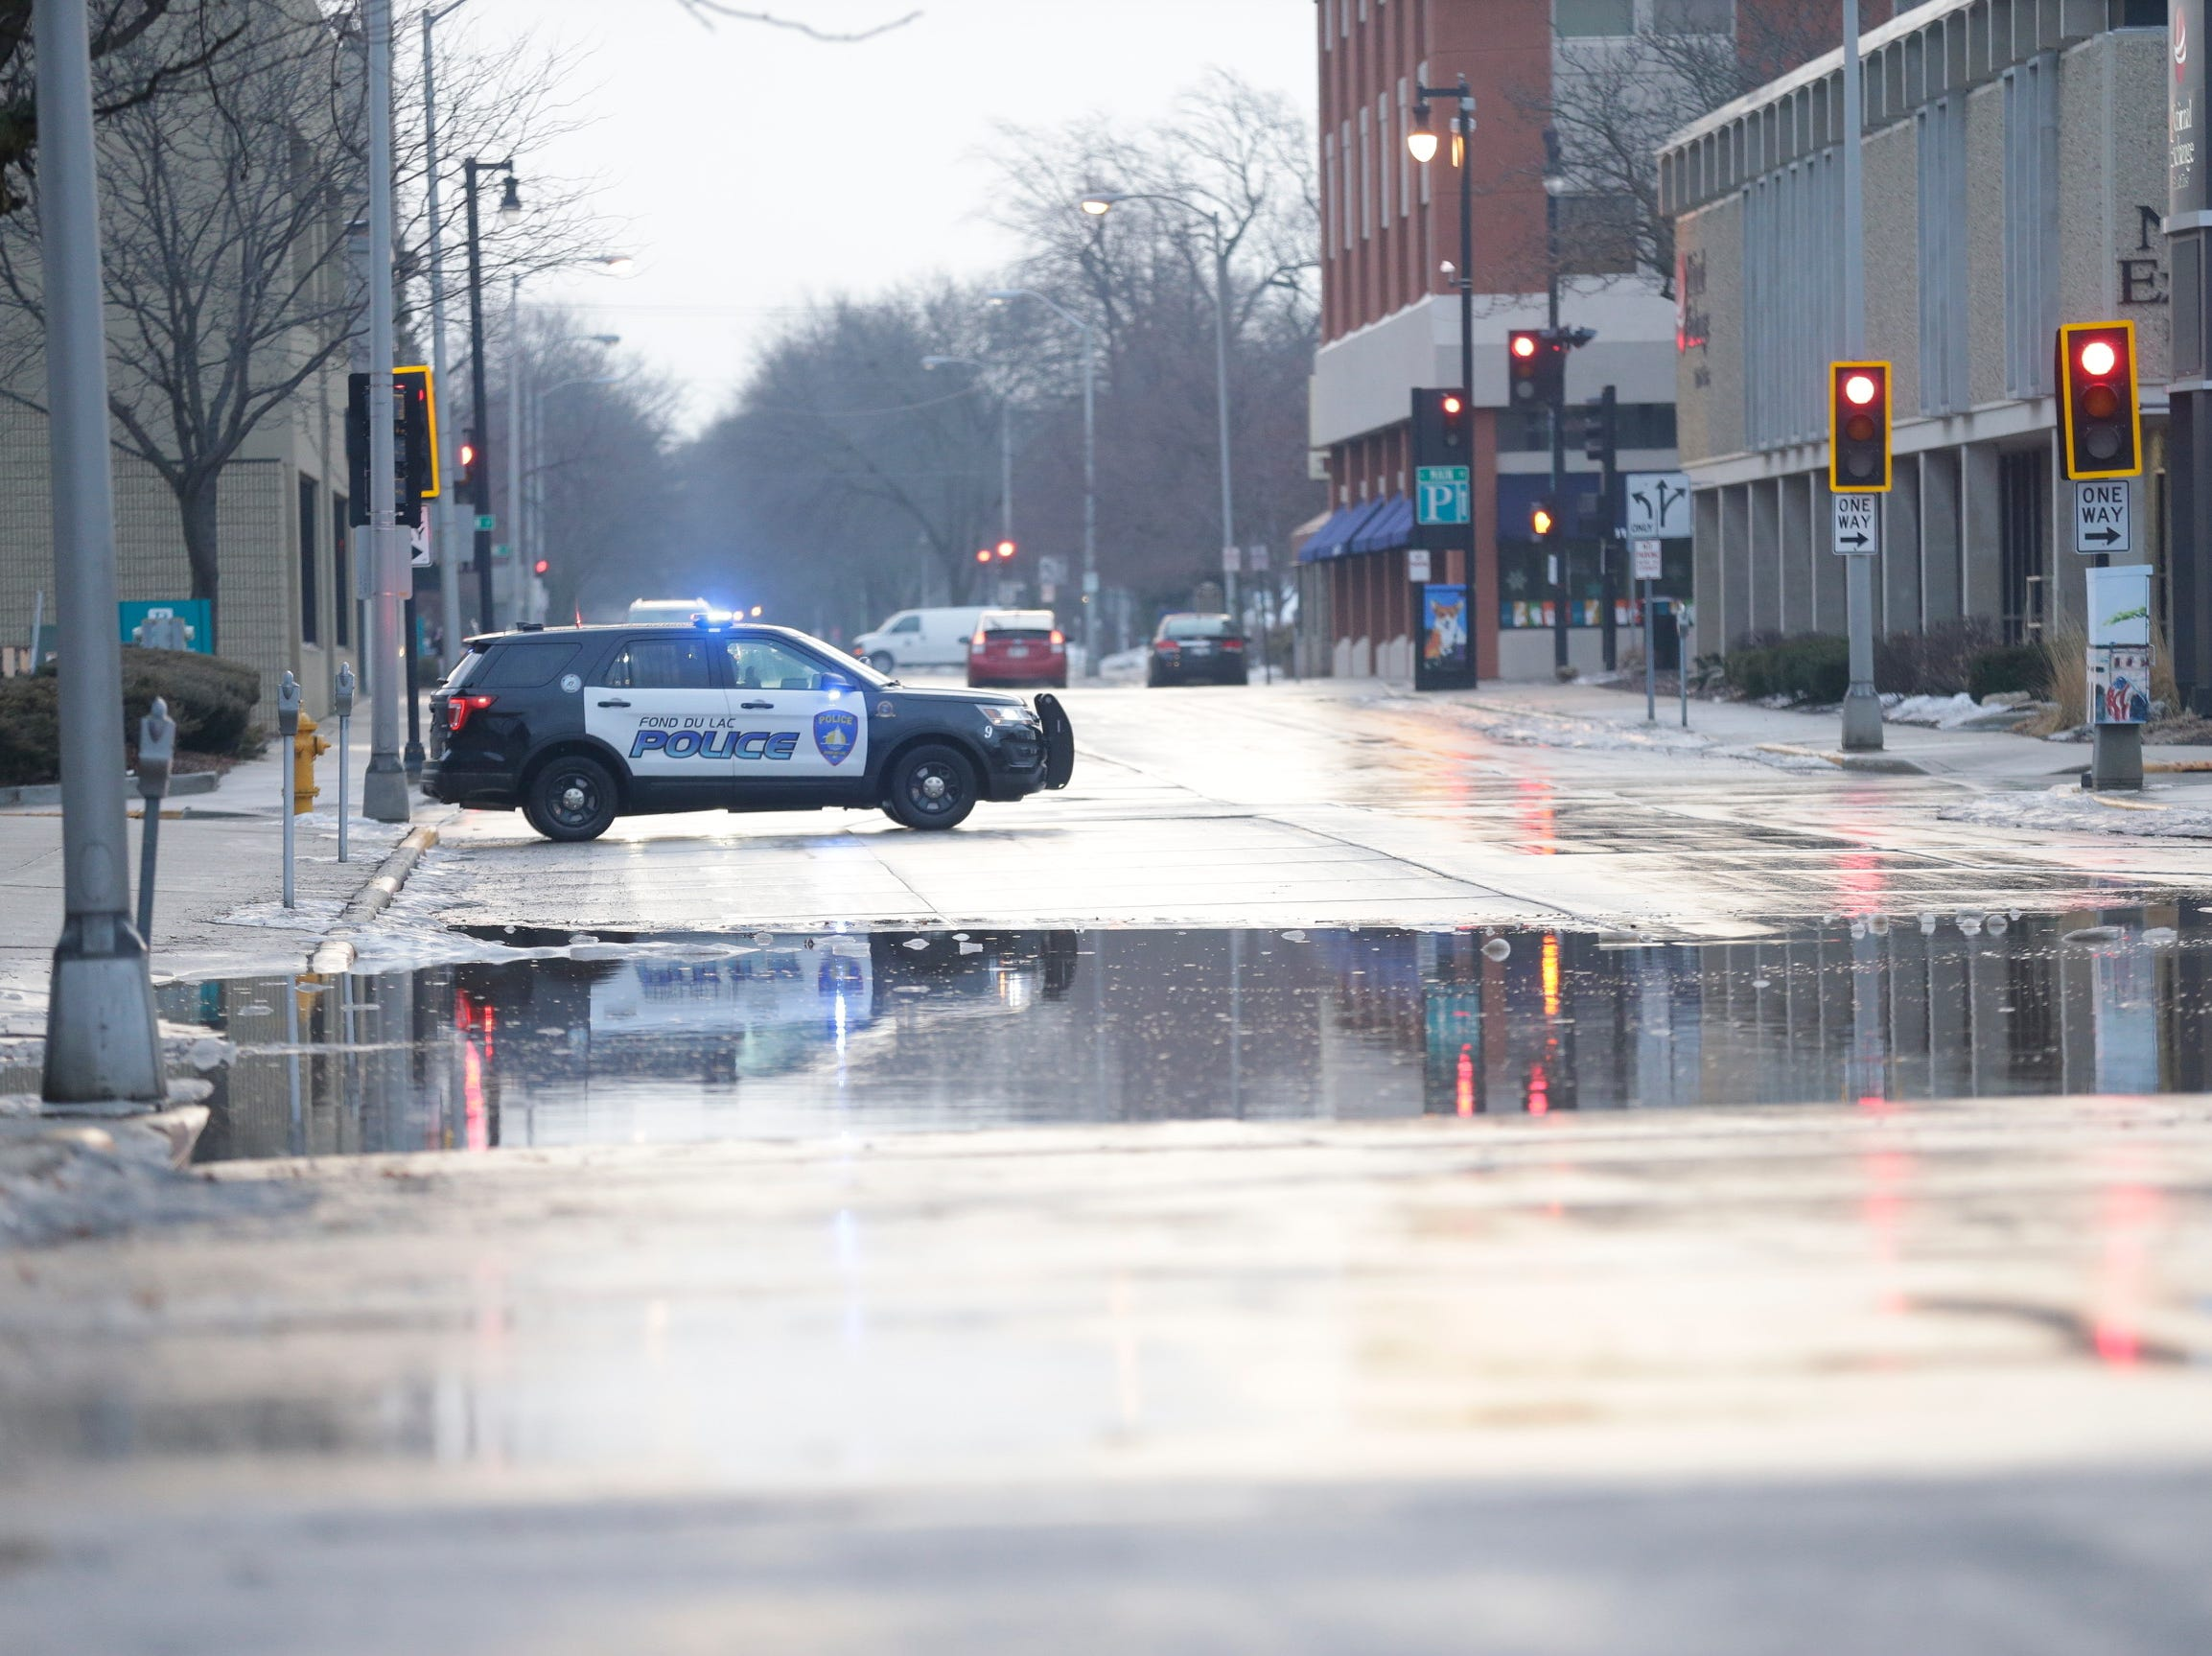 City of Fond du Lac police car blocks traffic on Second Street as water starts rising up due to an ice jam in the river.